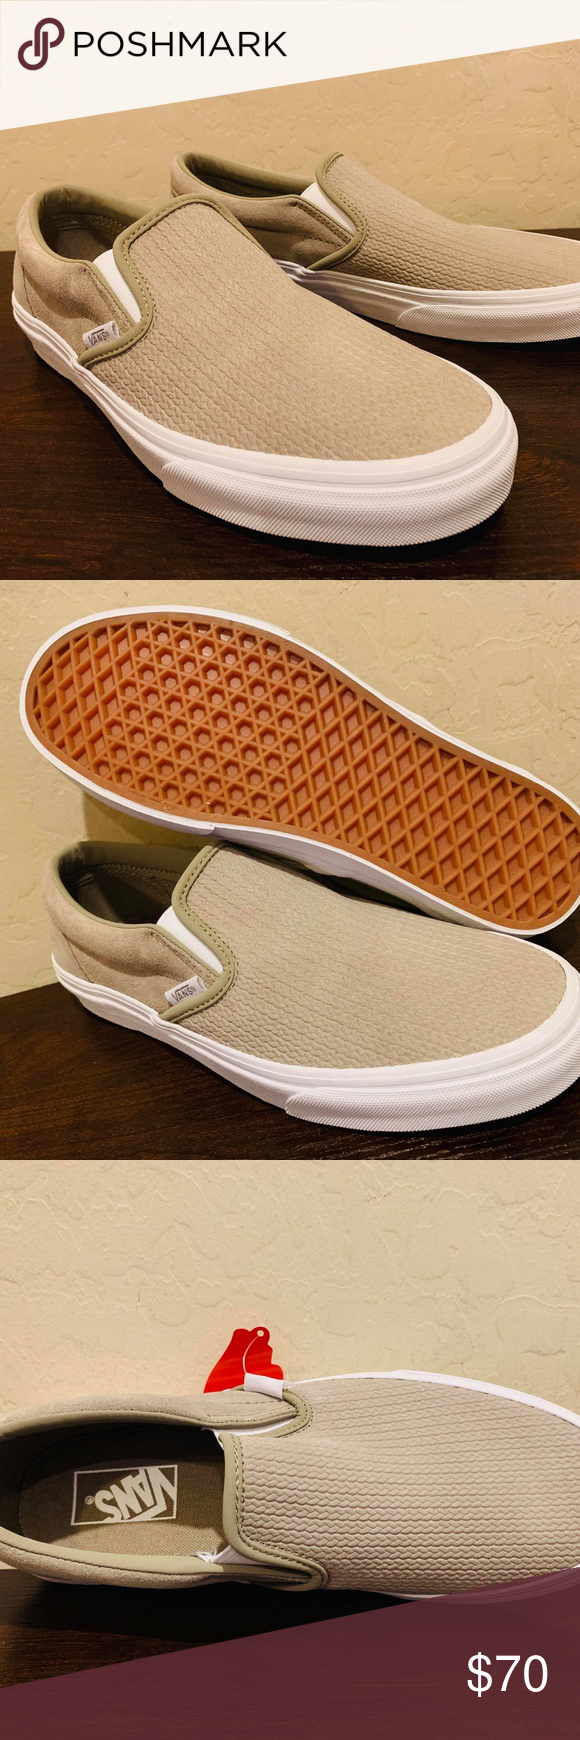 ae6d7873af8 Vans Women s Classic Slip-On Embossed Suede NEW AUTHENTIC Vans Classic Slip  On Shoes WOMEN S